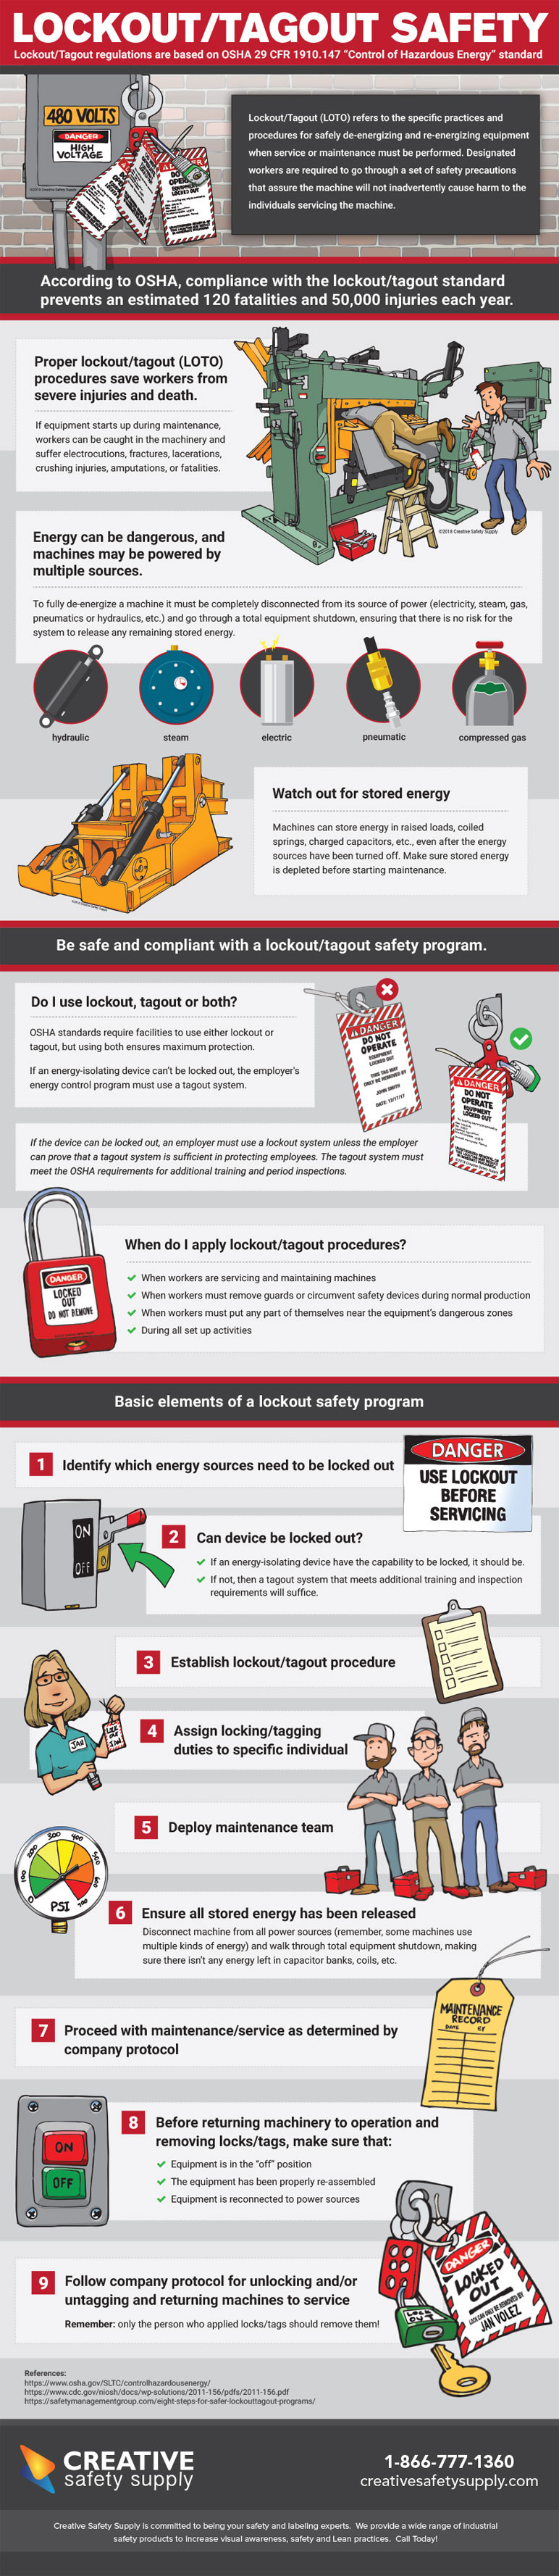 Lockout/Tagout Safety